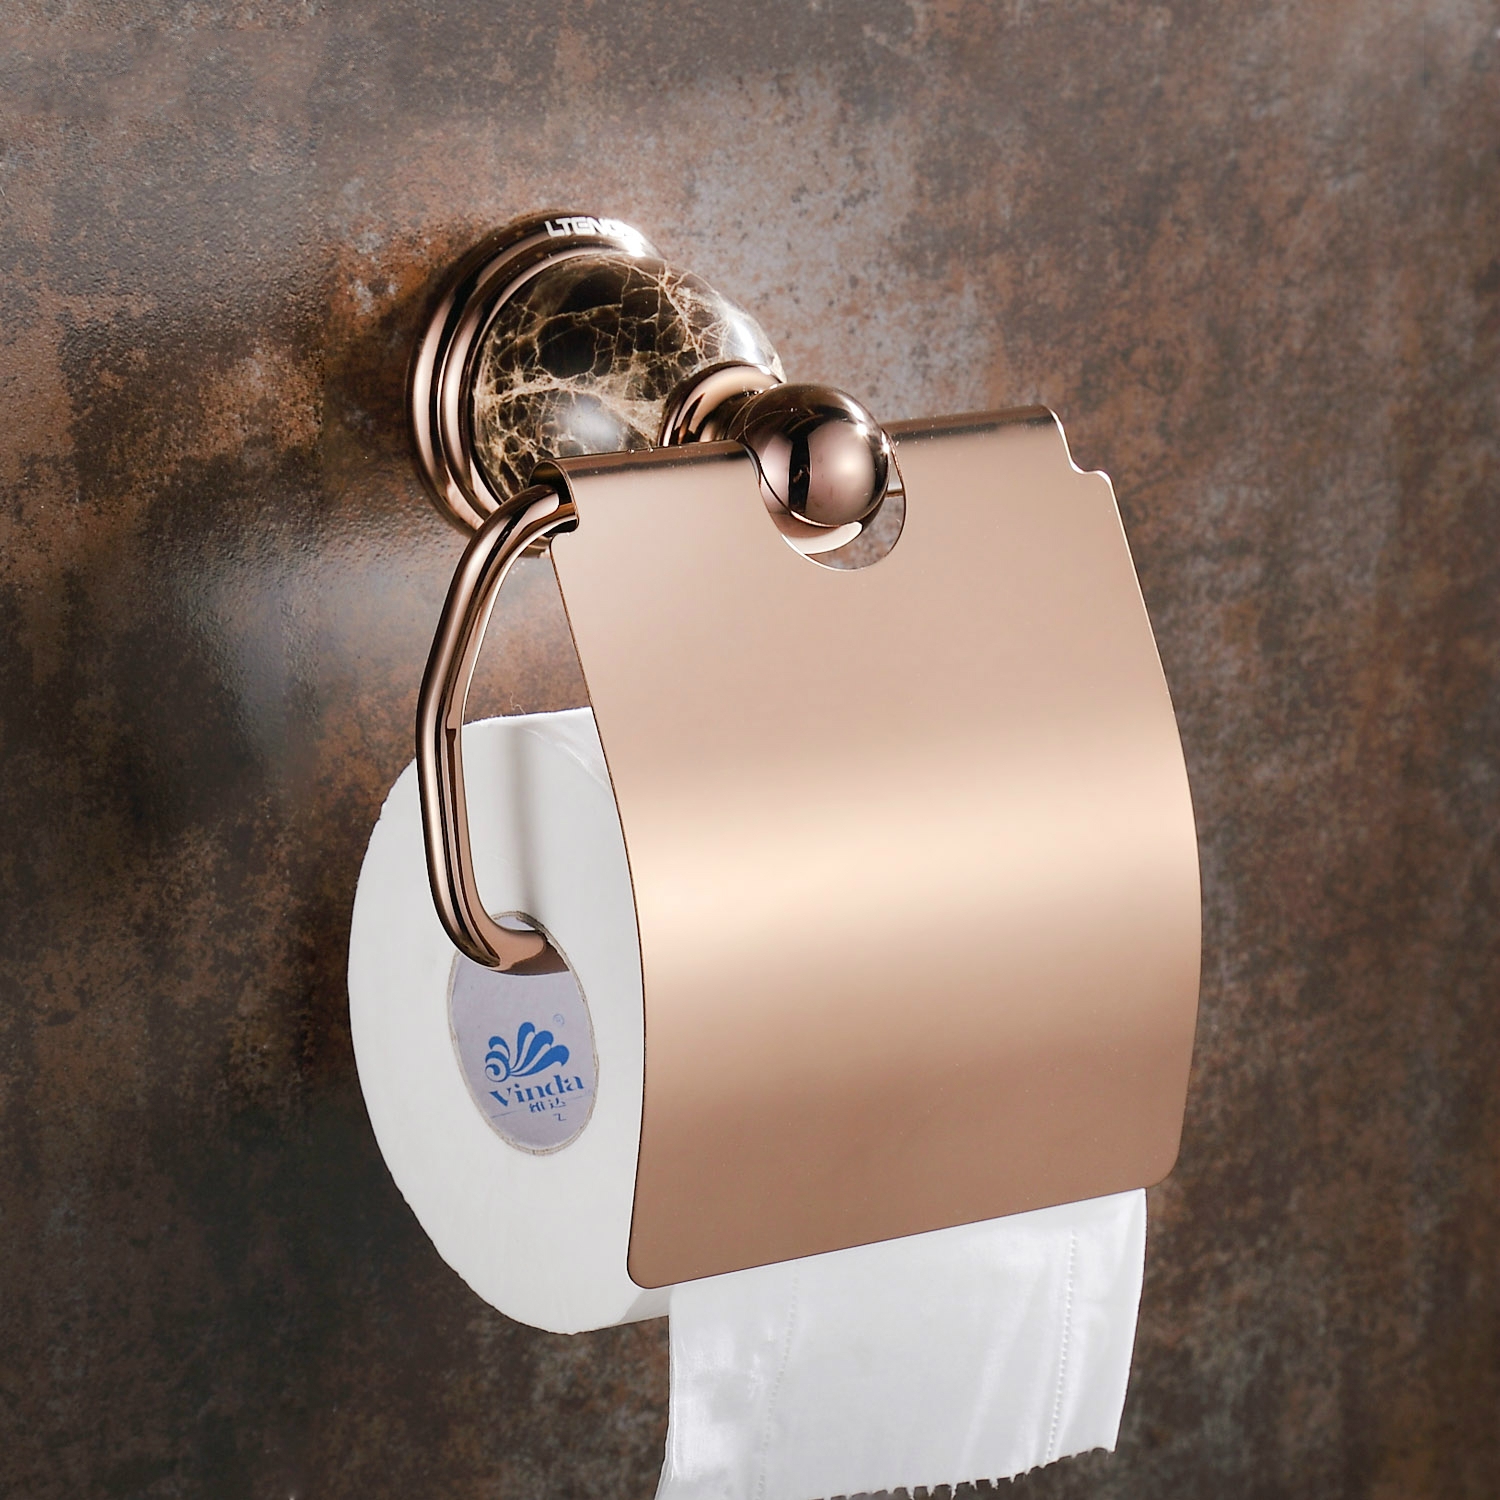 European Rose Gold Ceramic Polished Toilet Paper Holder Antique Brass Tissue Roll Holder Tissue Box Bathroom Accessories mj1